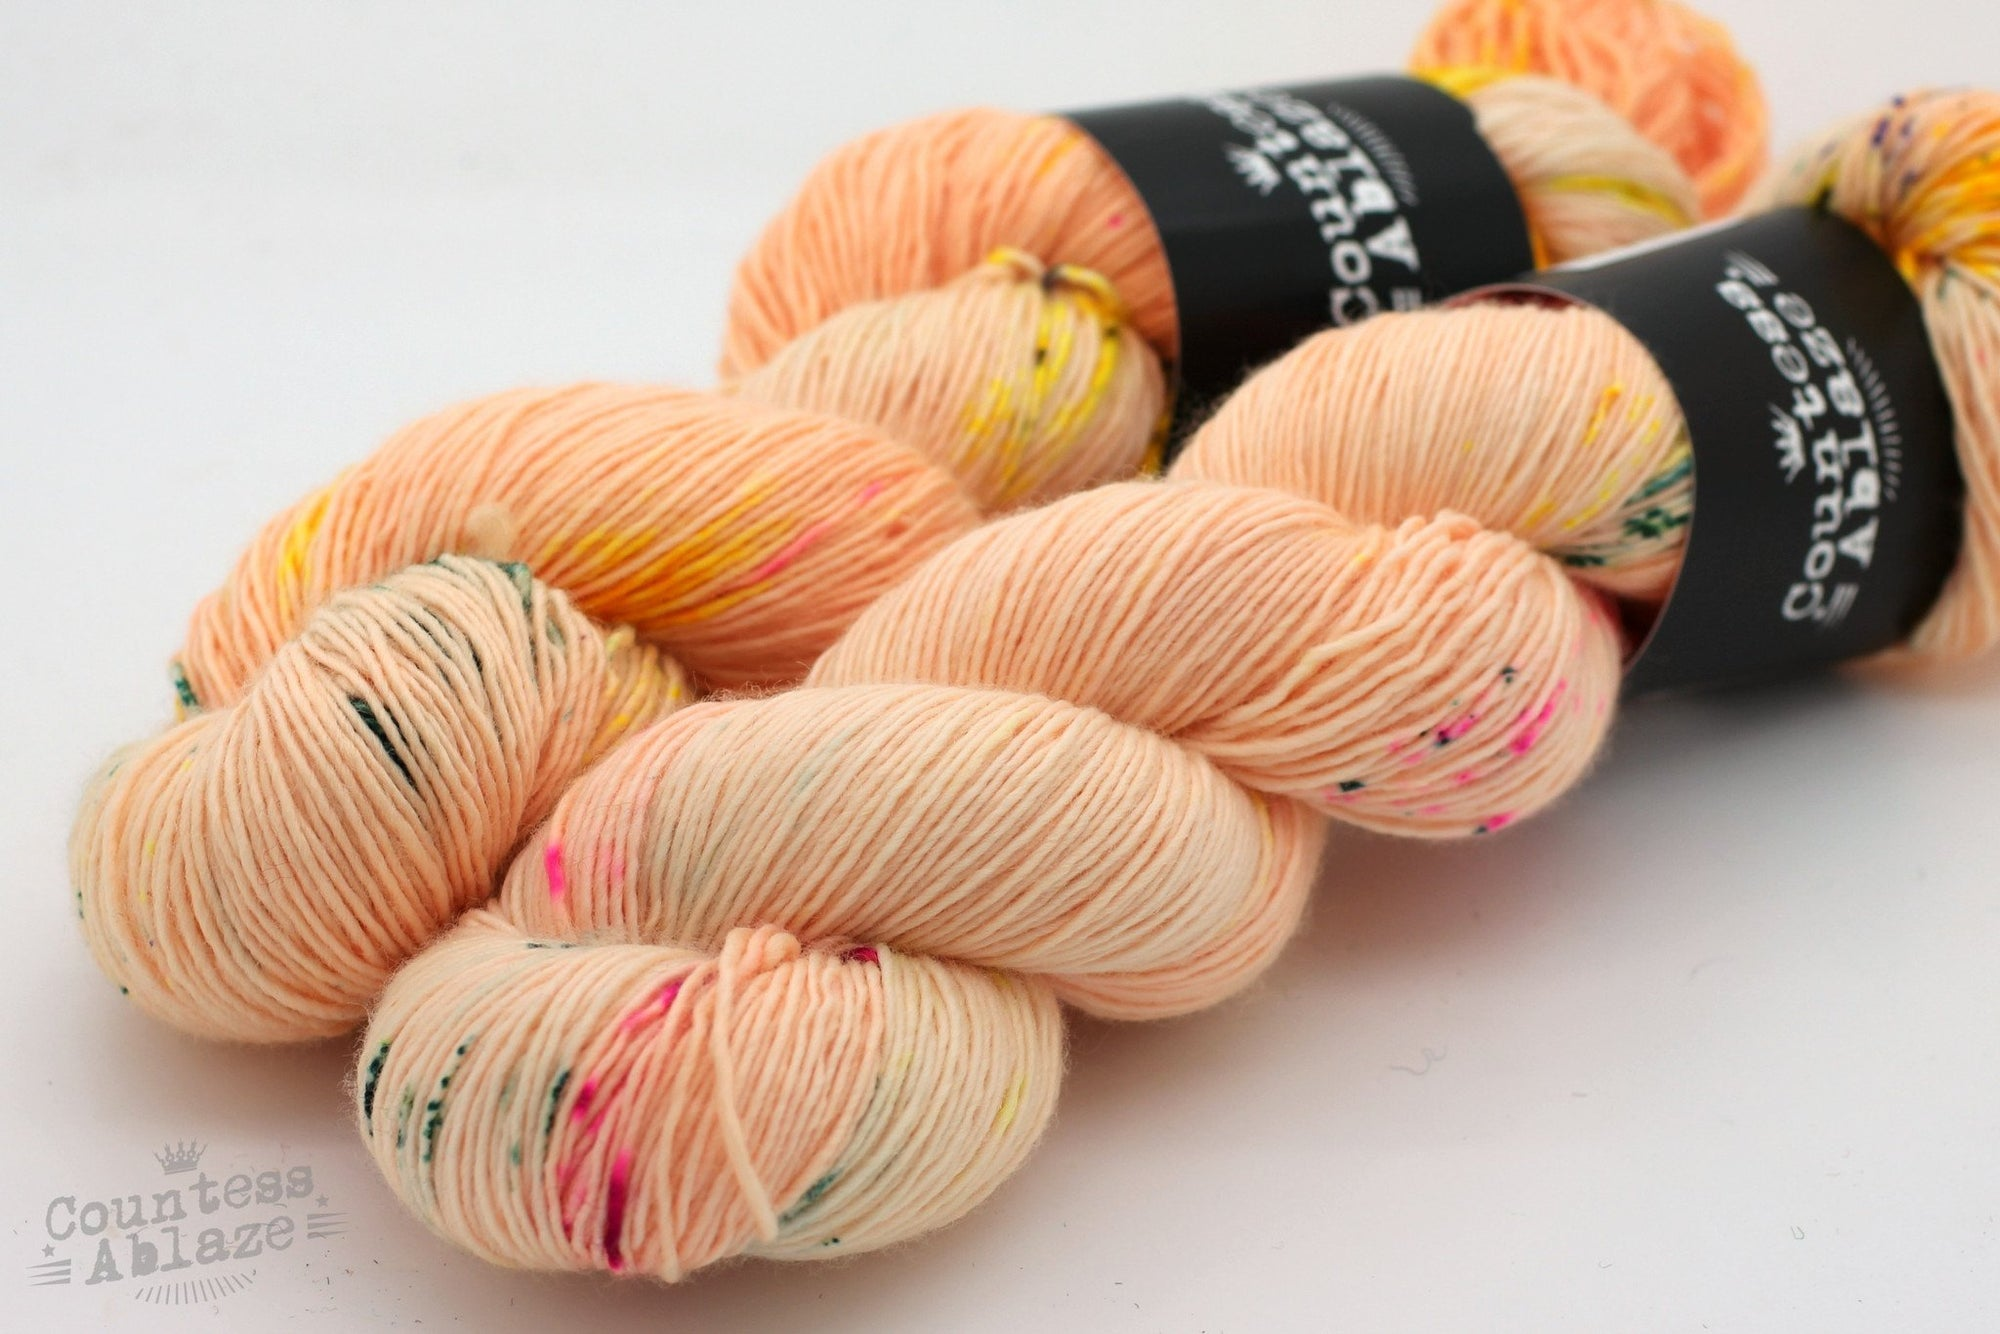 Colourway : Picking Up The Pieces | Countess Ablaze